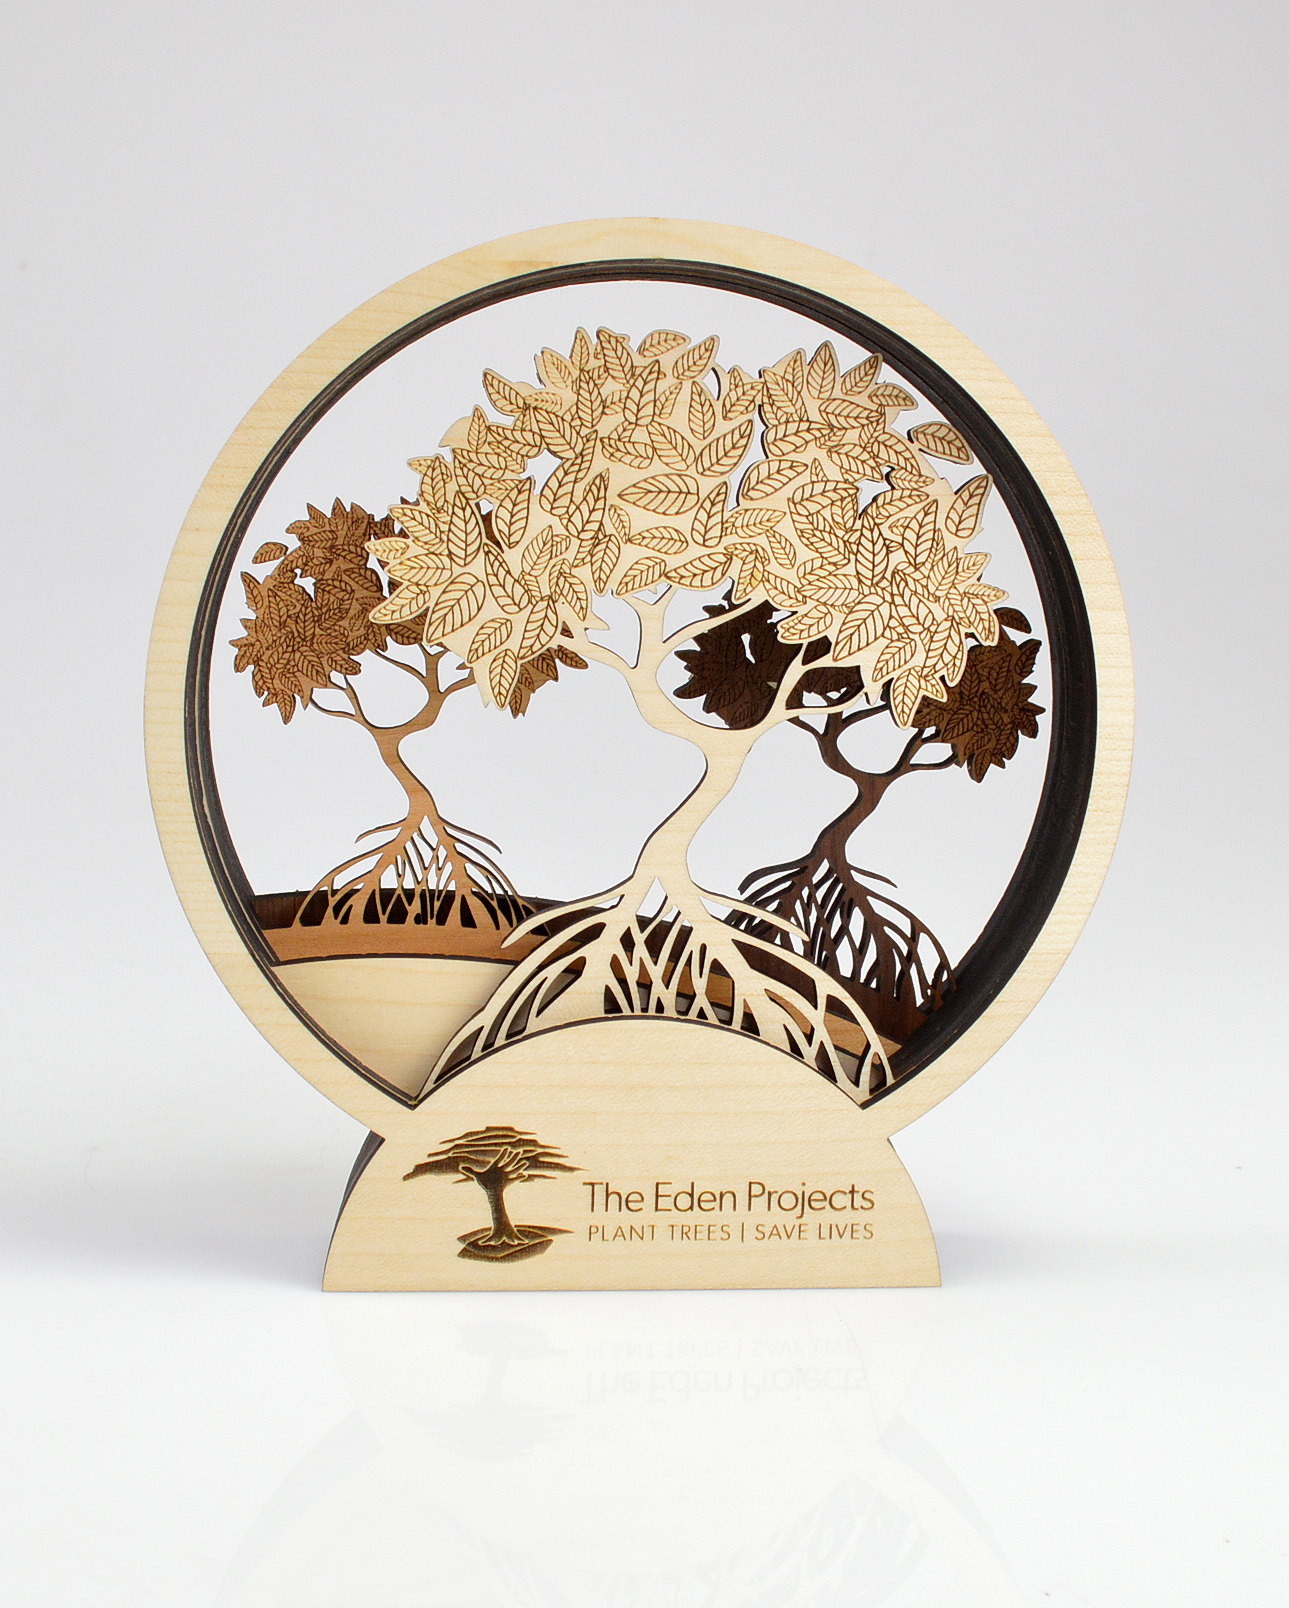 custom-award_wood-sculpture_laser-engraved_eco-friendly_non-profit_recognition-award_canada